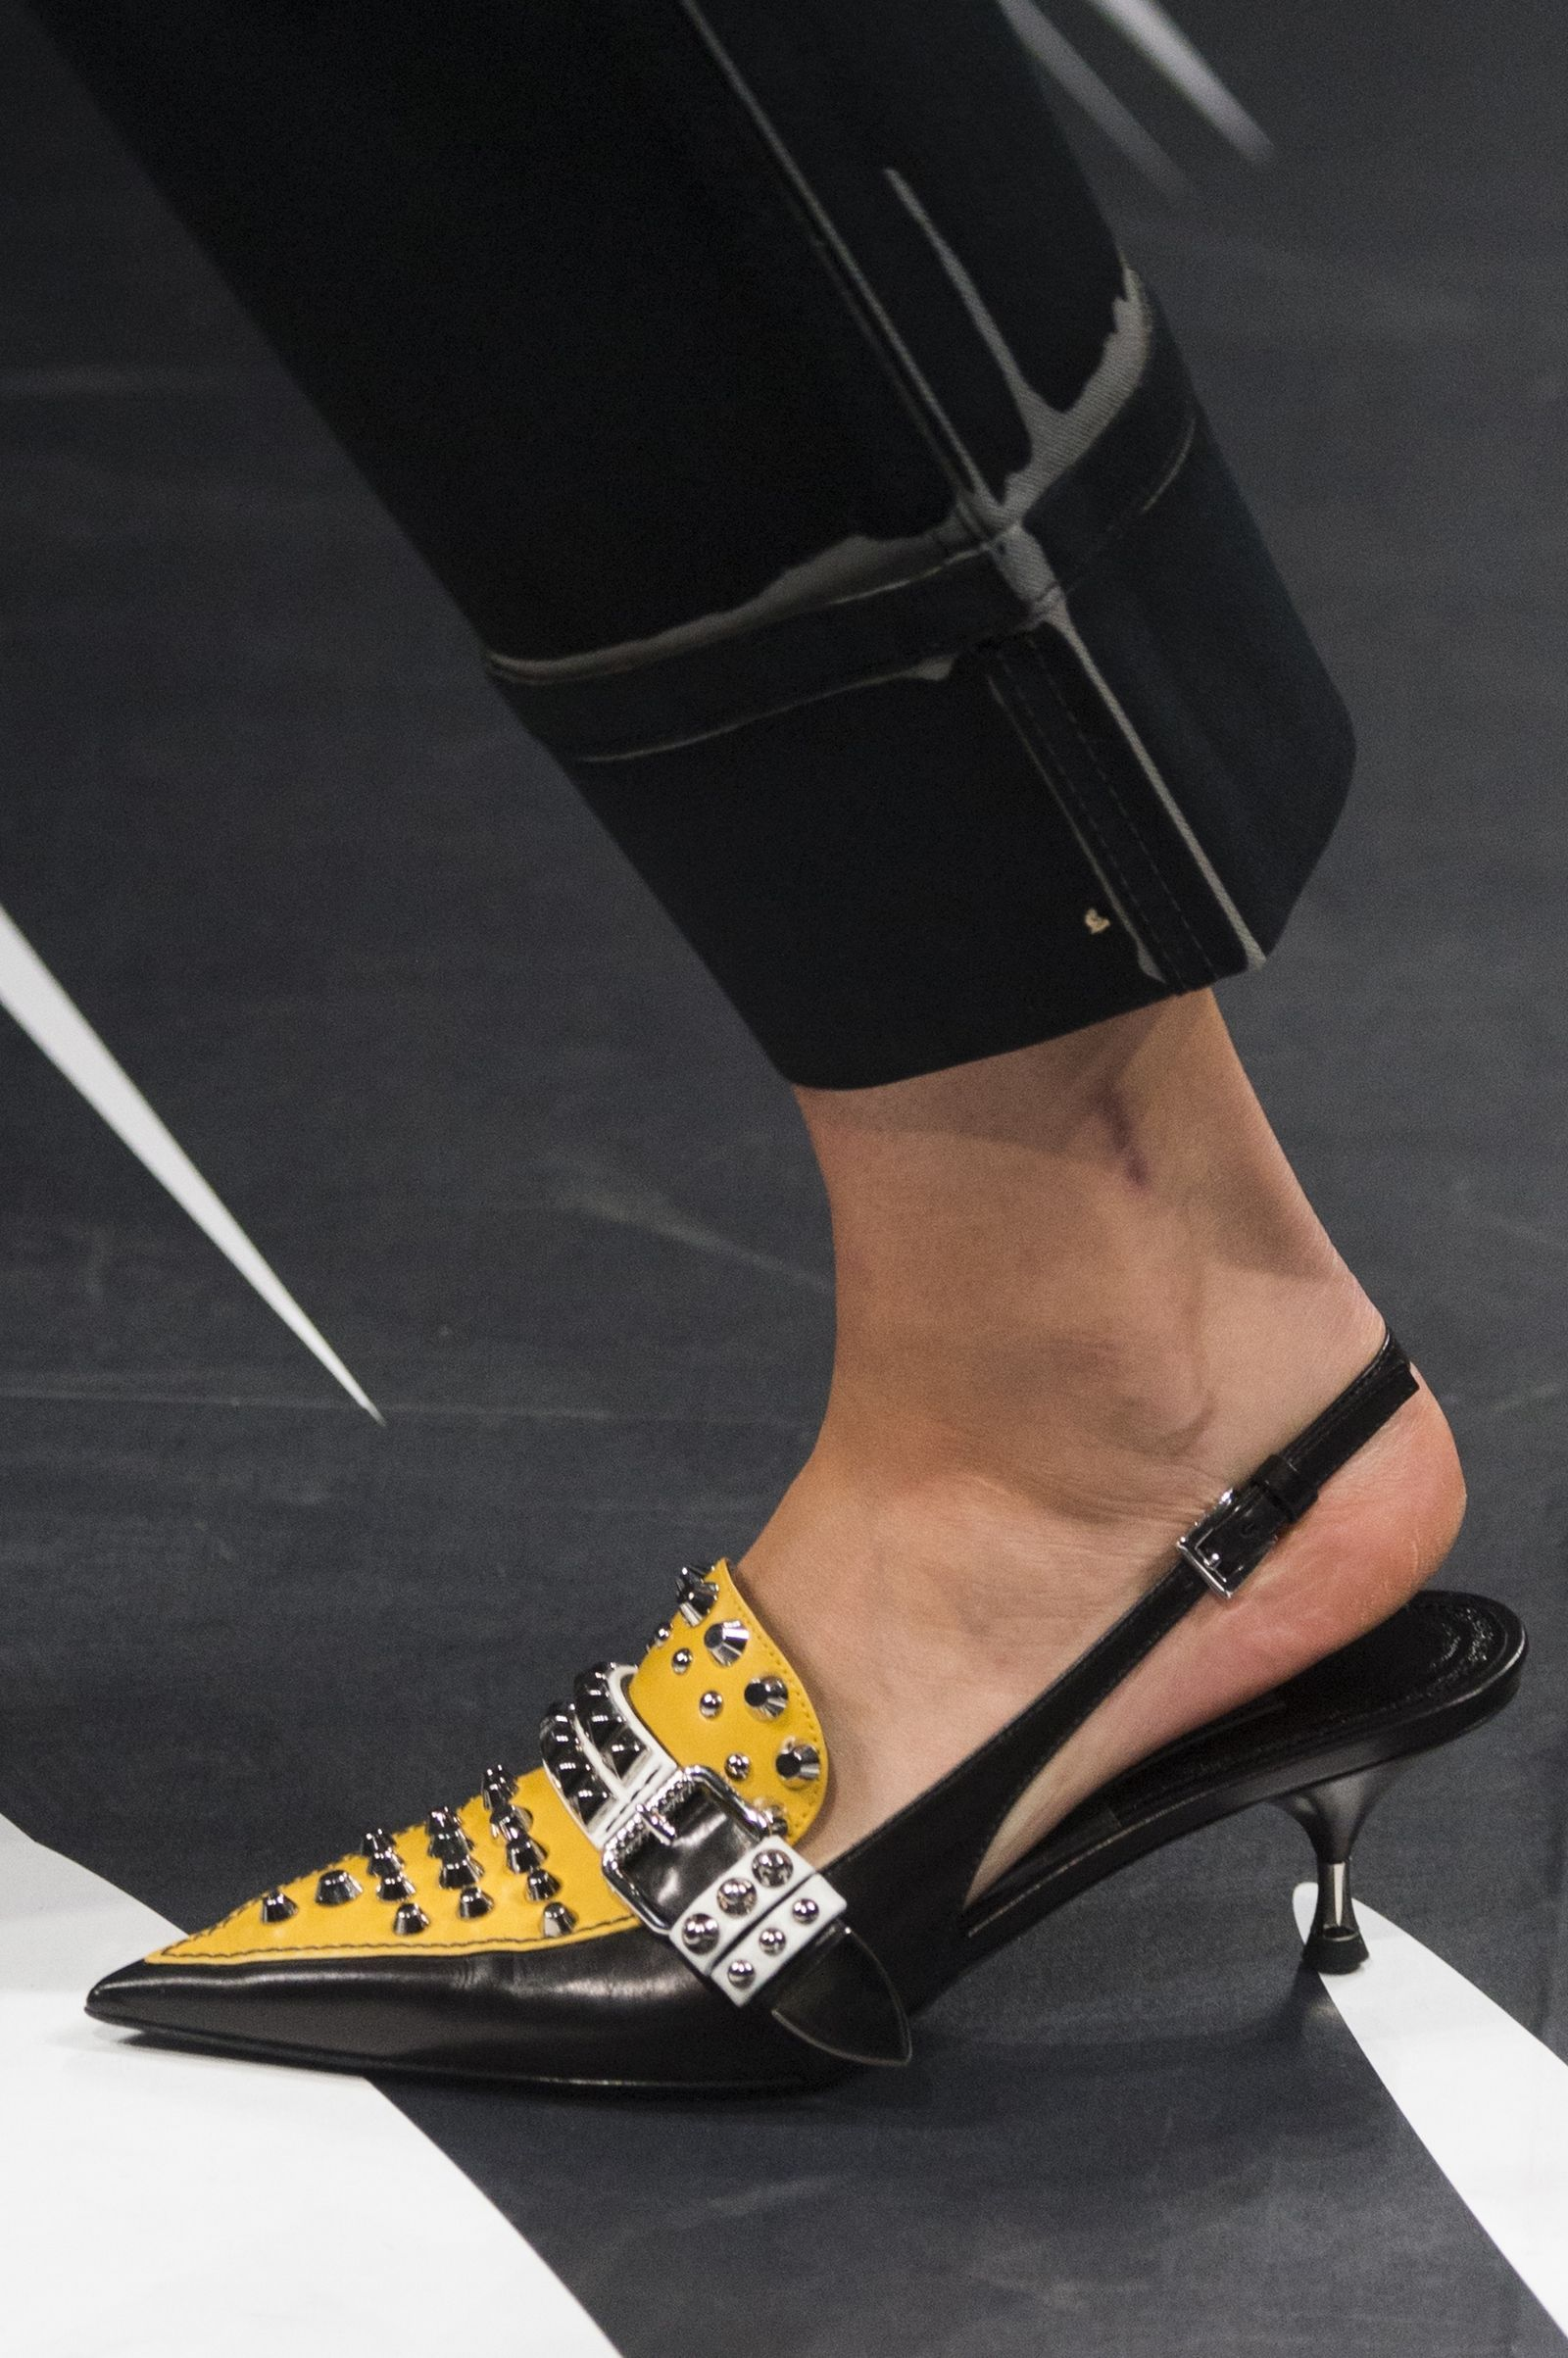 b0a68226b The Hottest Spring 2018 Shoes From The Runways